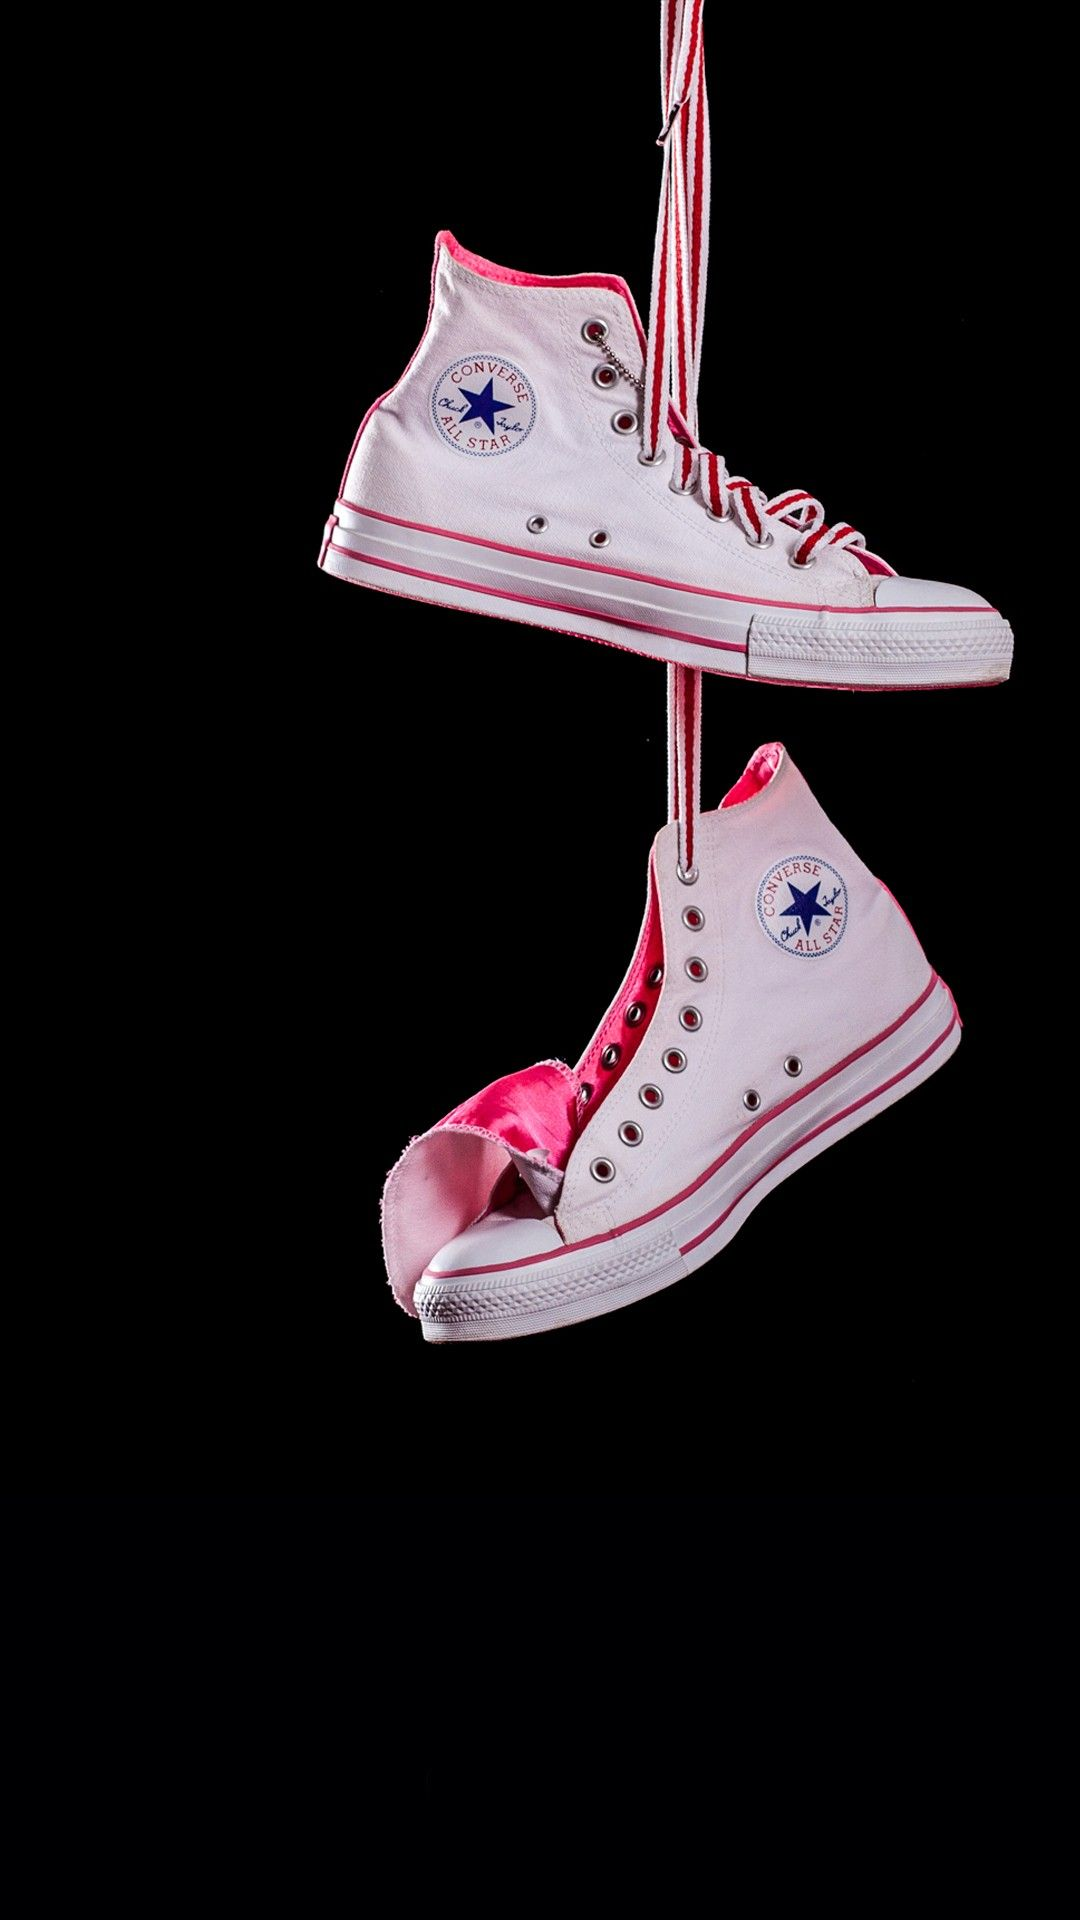 chuck taylor converse shoes tie-dye wallpaper quotes for iphone